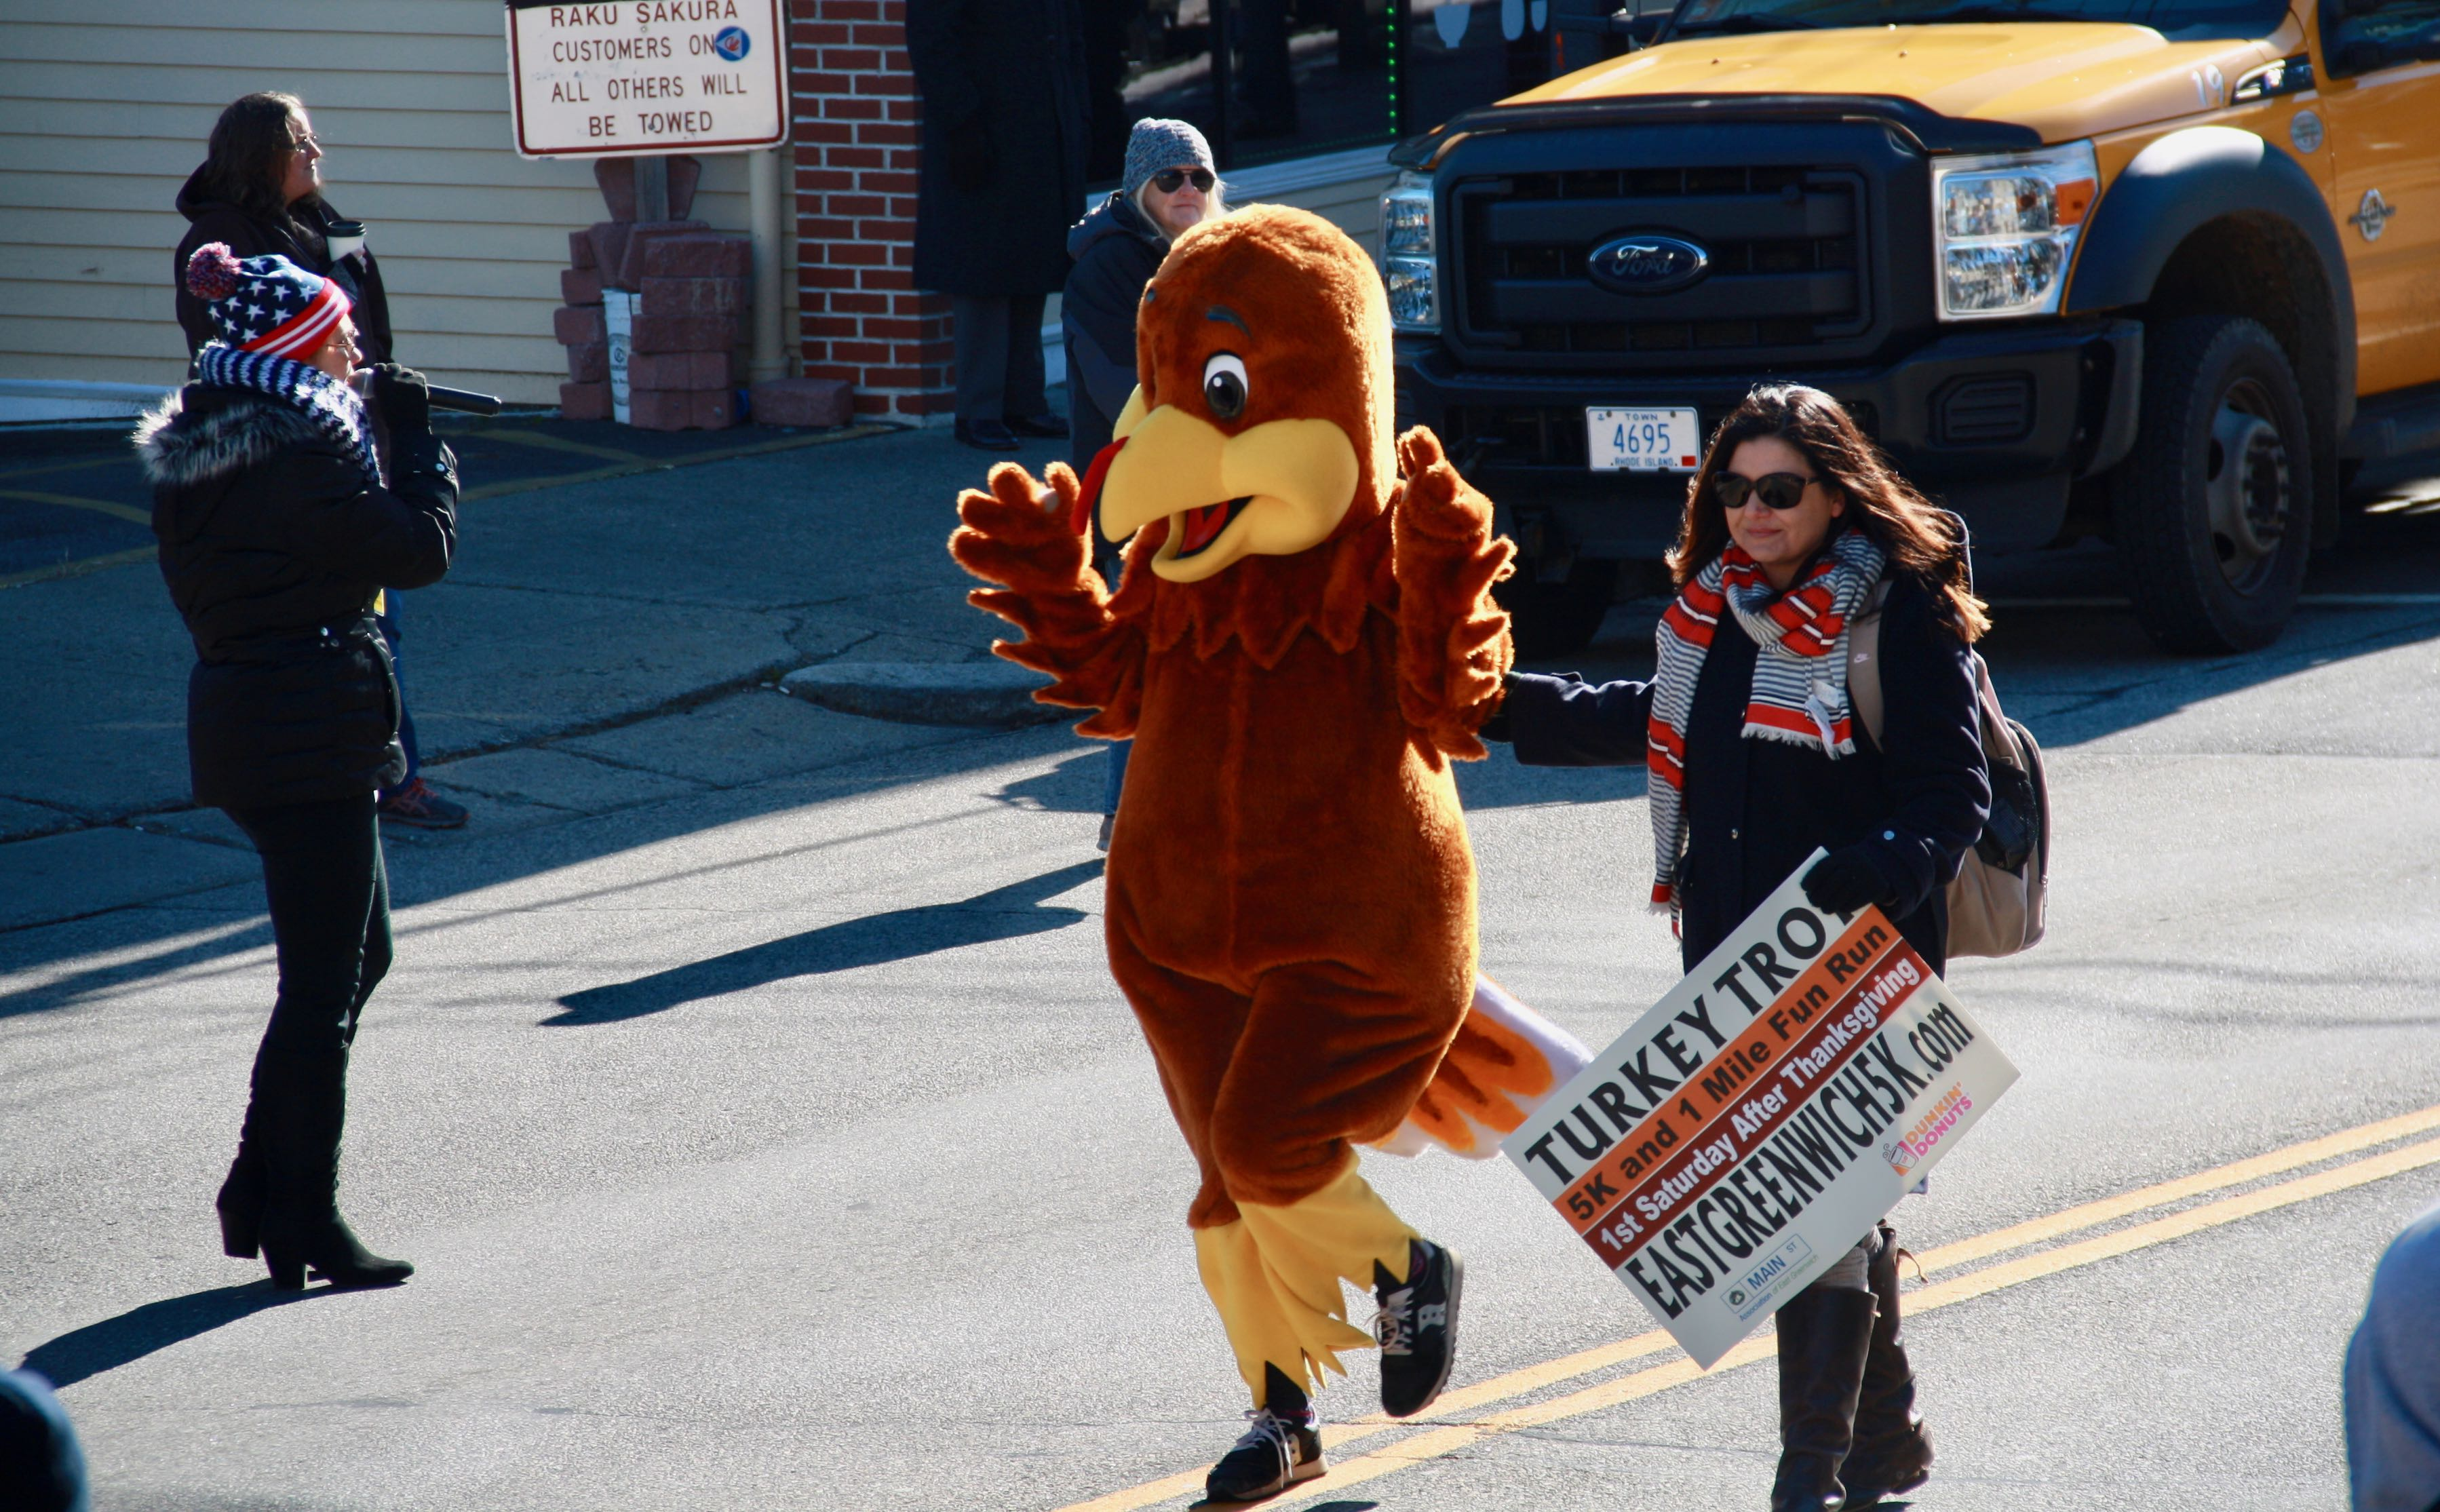 The Main Street Association's Turkey Trot is just a couple of weeks away – Saturday, Nov. 25. Sign up at eastgreenwich5k.com.